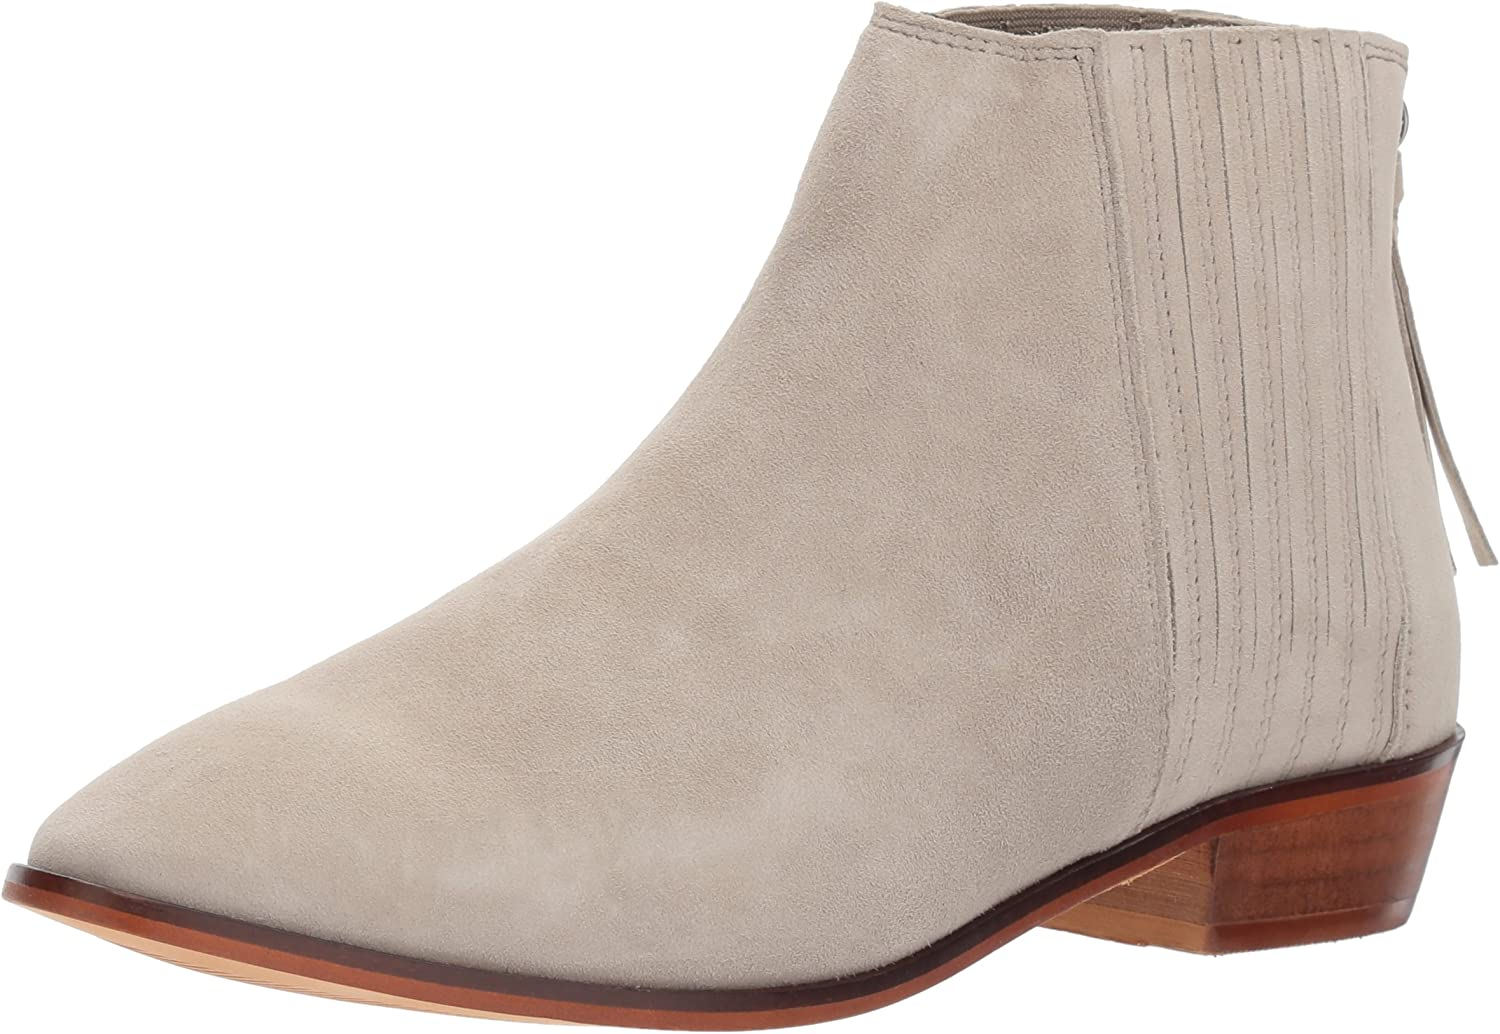 Kenneth Cole REACTION Womens Loop-y Flat Ankle Bootie Finger Gusset Suede Ankle Bootie